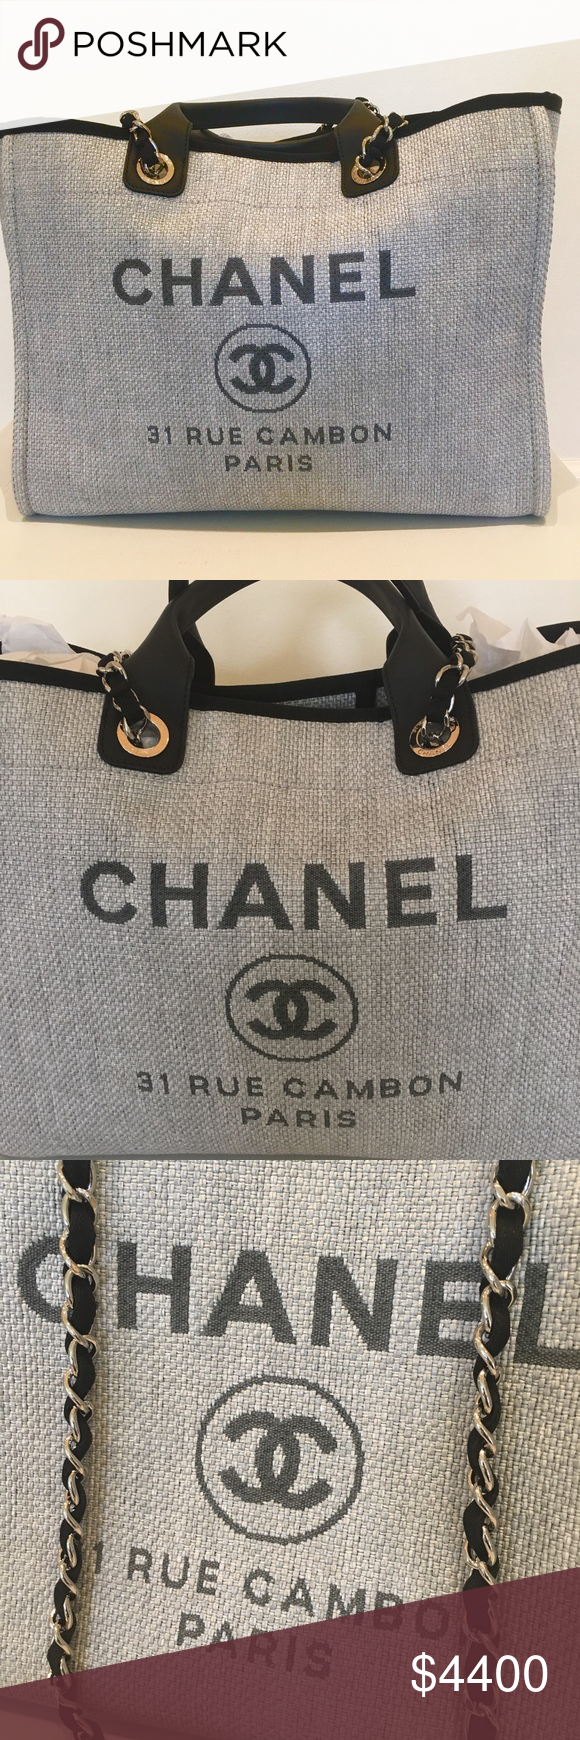 9afff731c Spotted while shopping on Poshmark: Chanel Deauville Tote! #poshmark  #fashion #shopping #style #CHANEL #Handbags